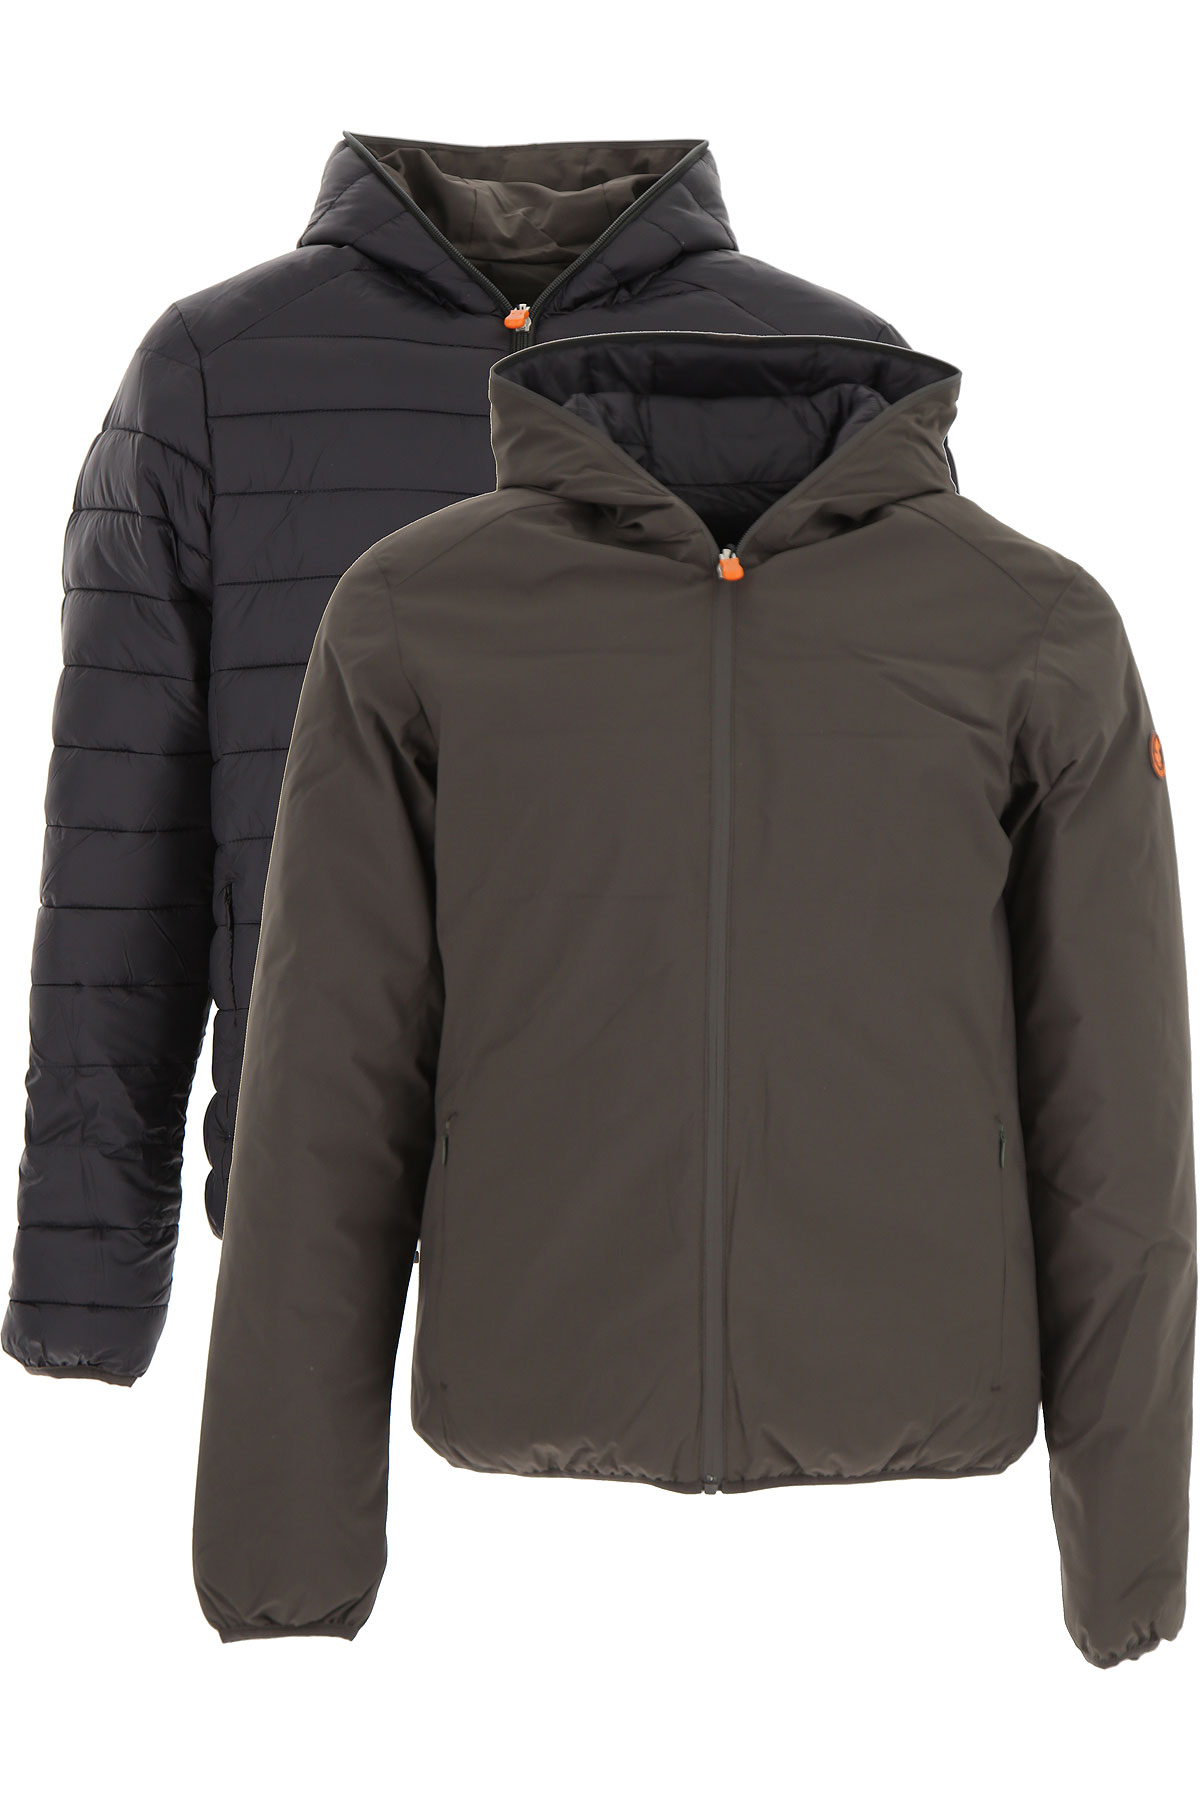 Save the Duck Down Jacket for Men, Puffer Ski Jacket On Sale, Dark Grey, poliammide, 2017, M XXL USA-426018